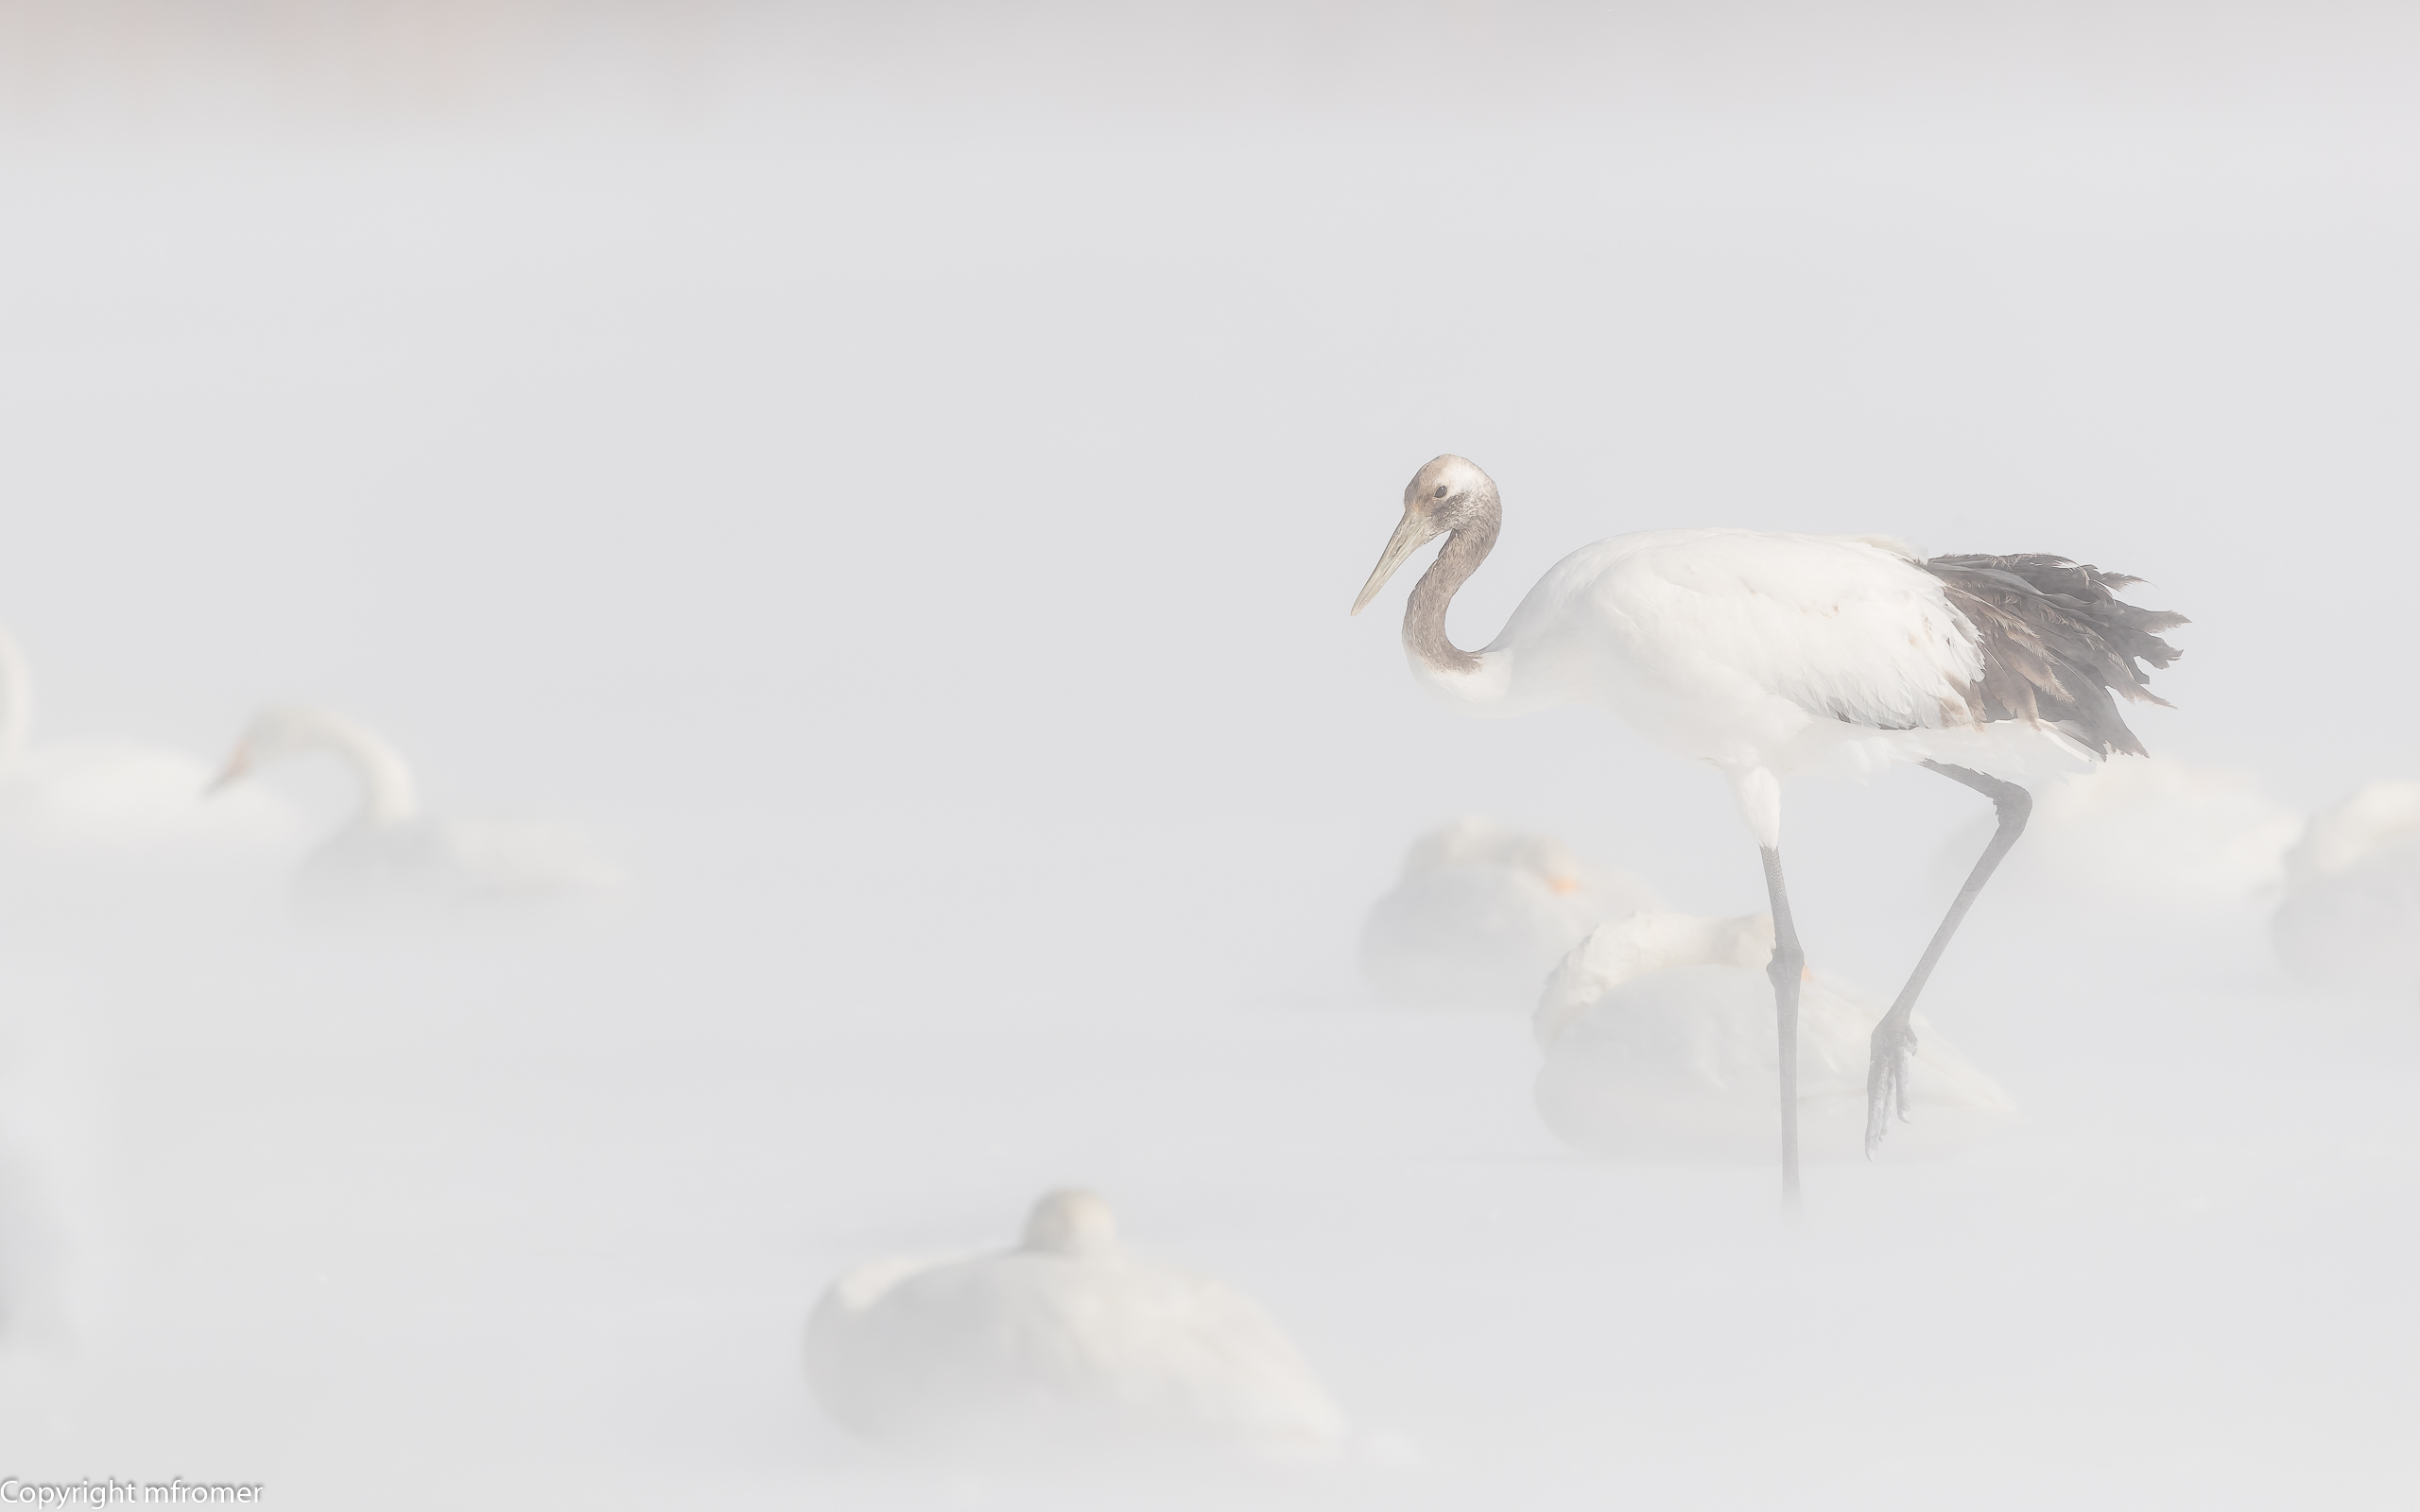 A subadult crane and whooper swans